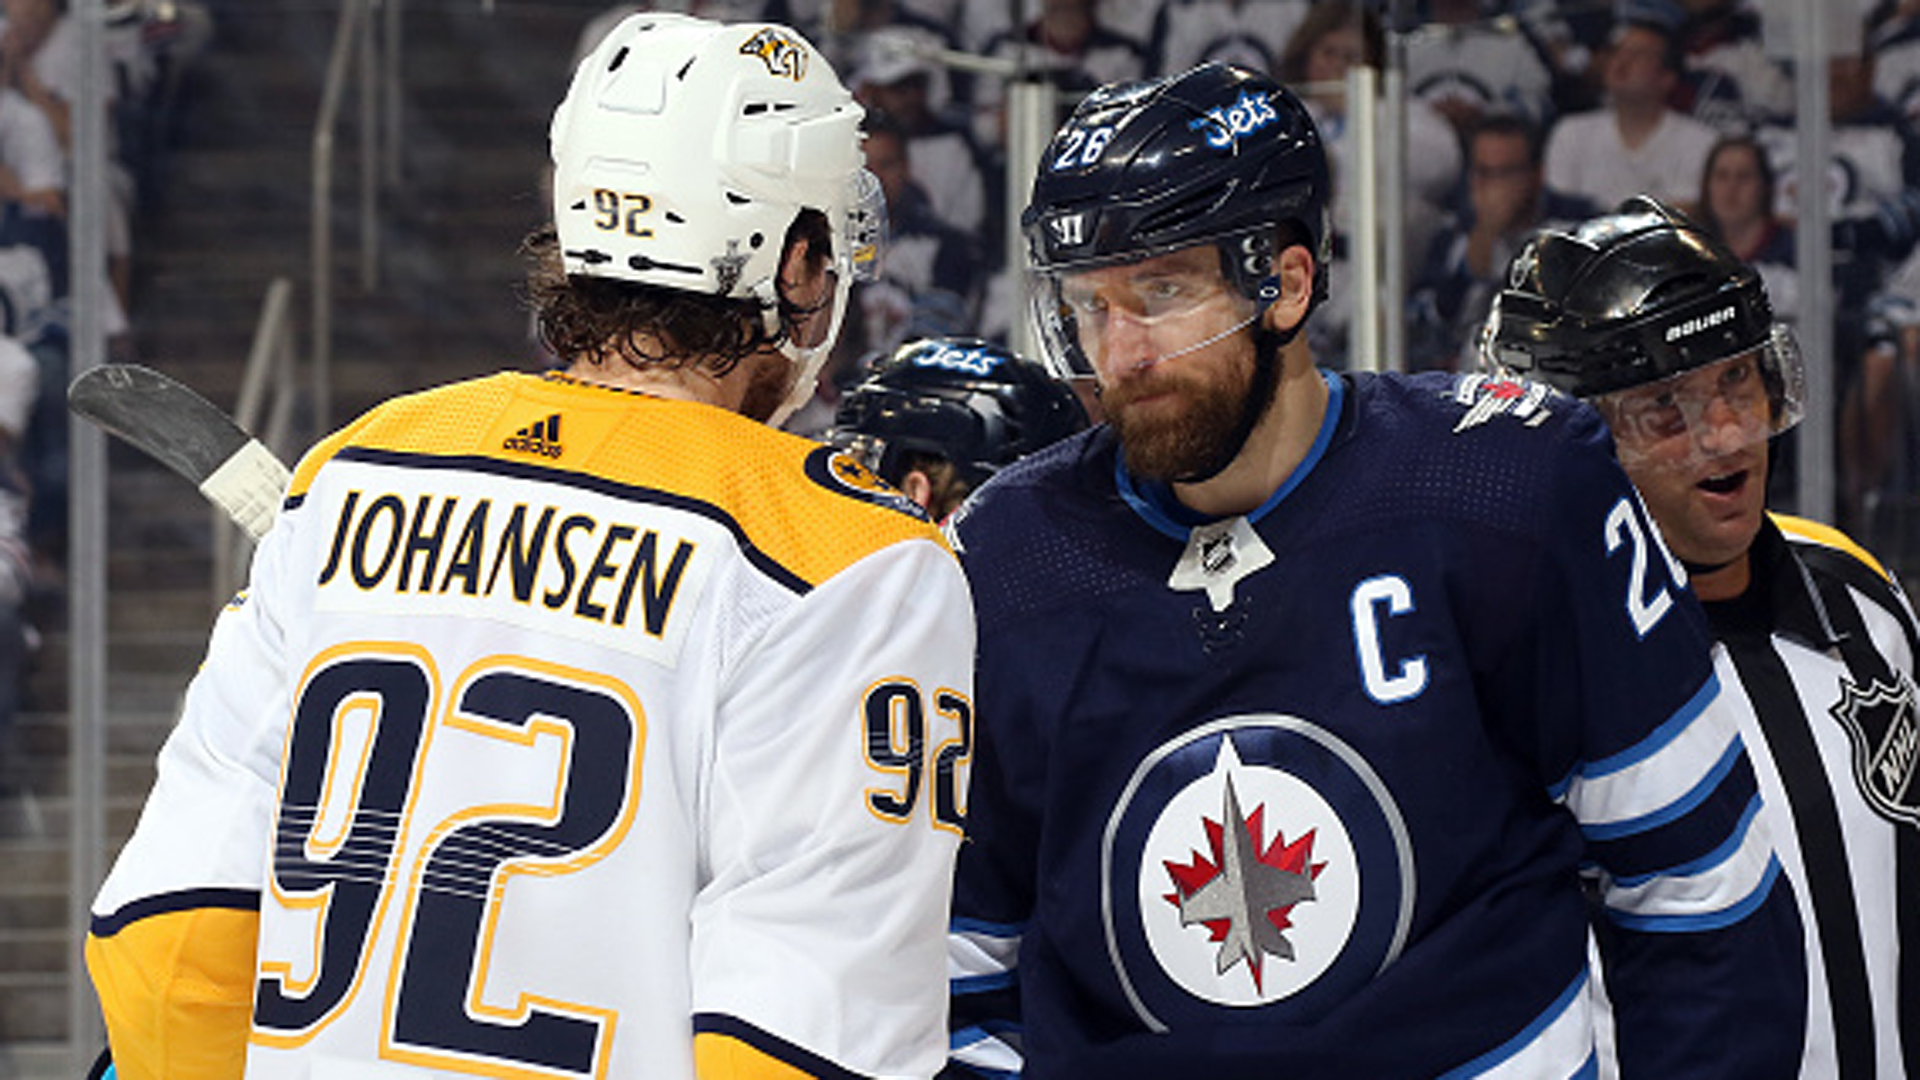 Jets Confident They Can Get Back On Track After Game 6 Loss To Predators